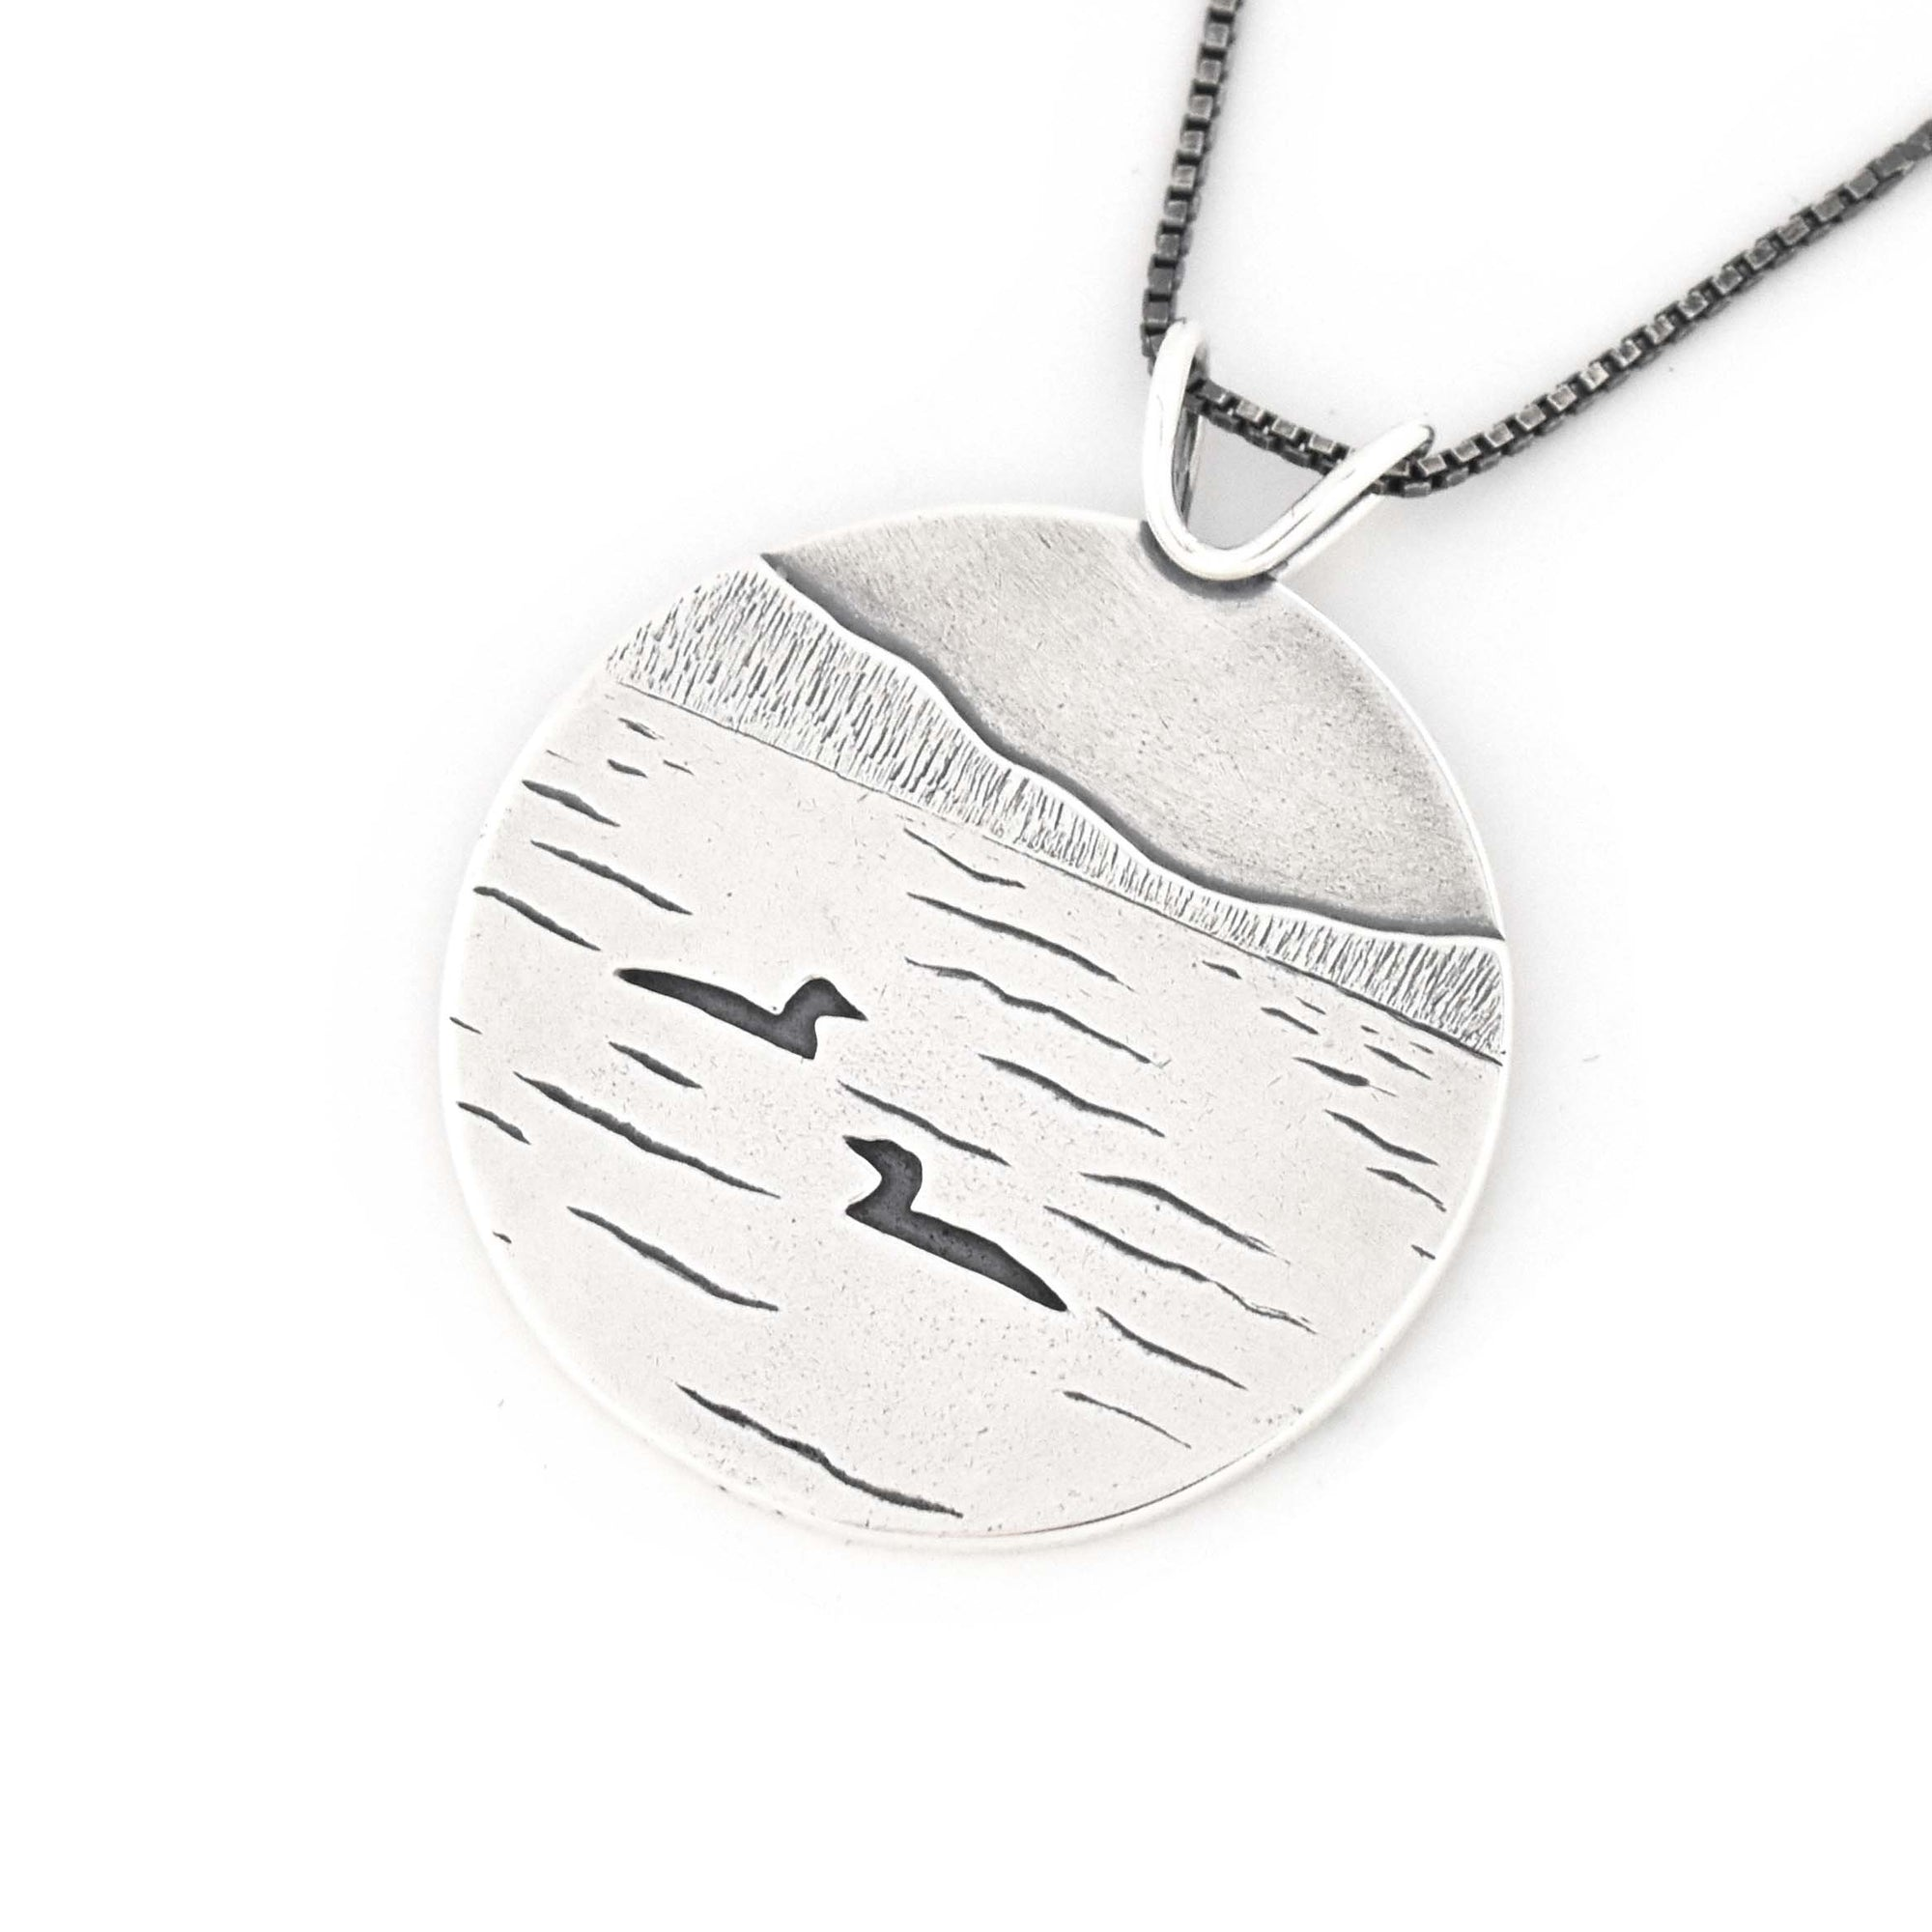 Loon Lake Pendant, Silver Pendant handmade by Beth Millner Jewelry